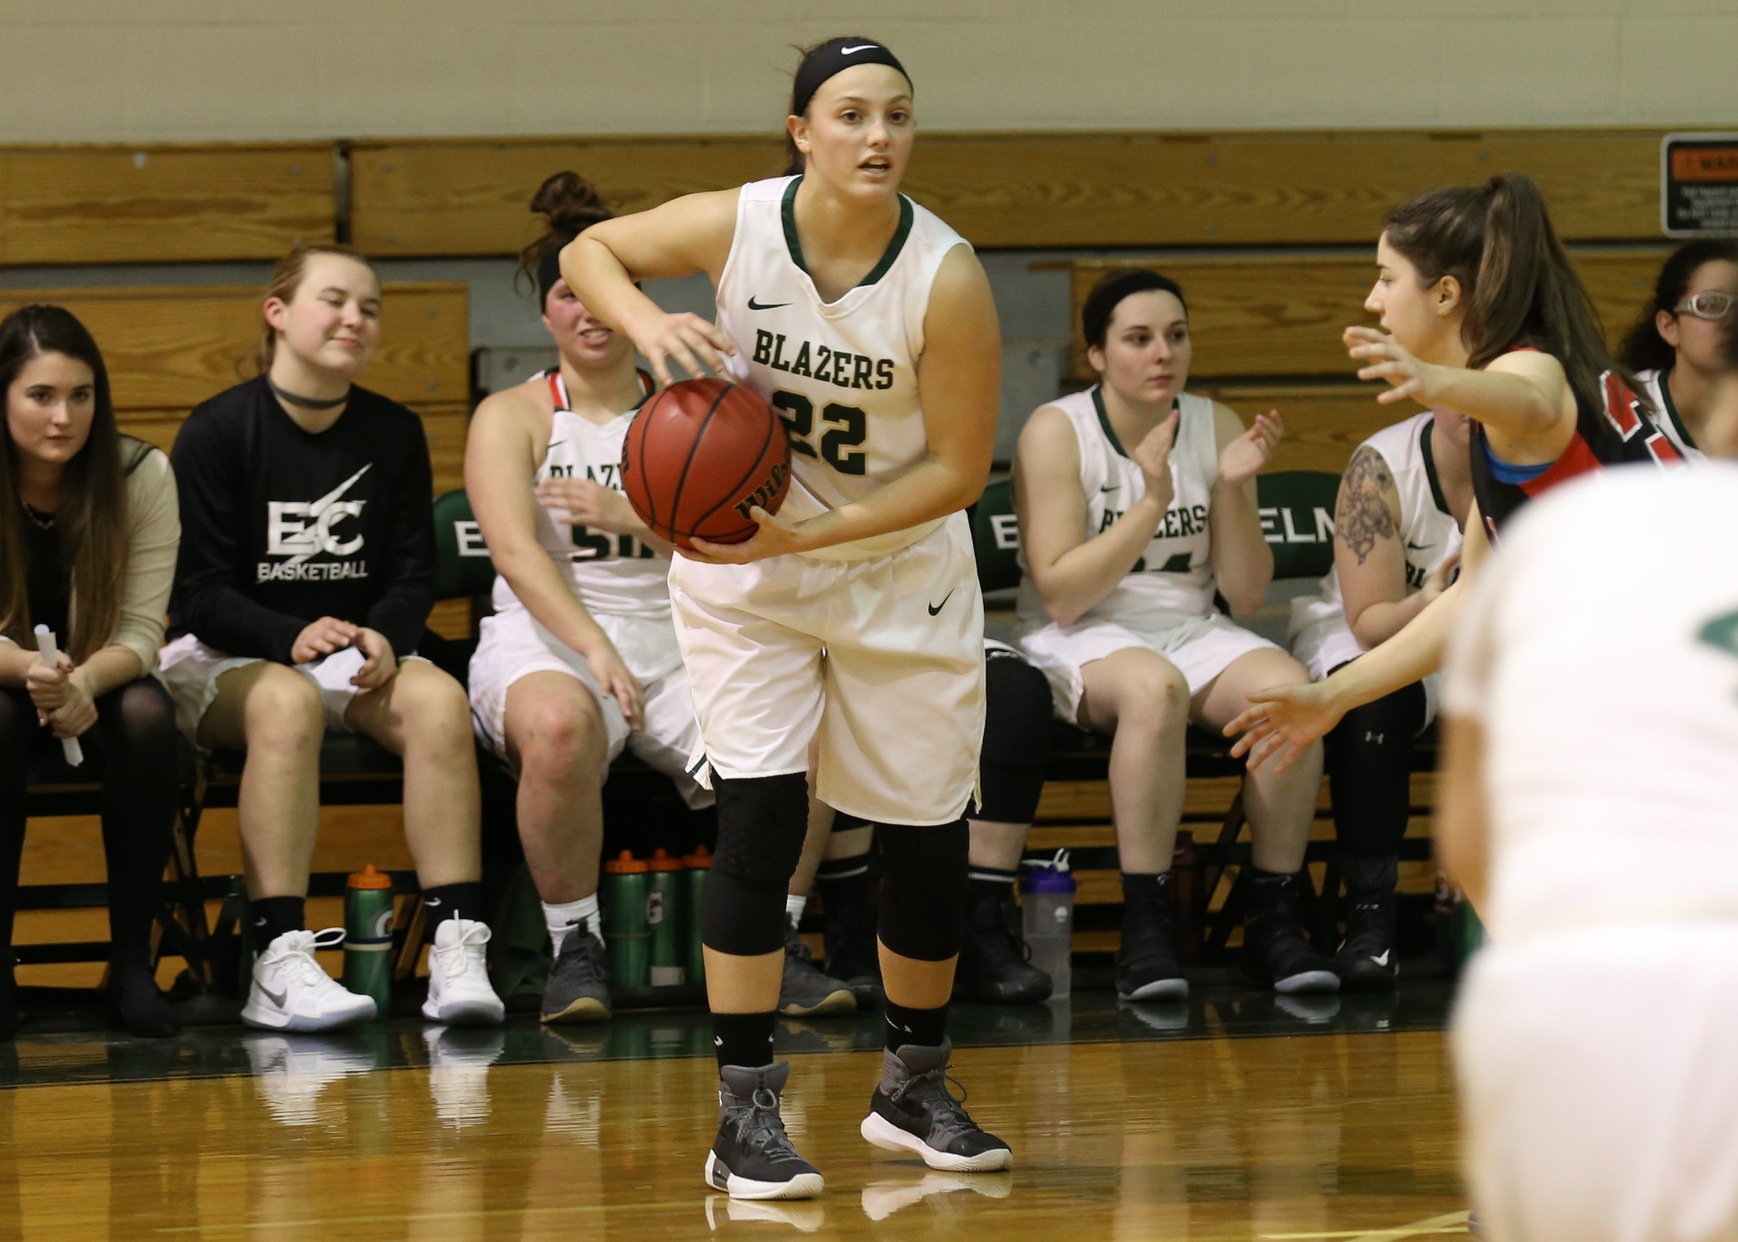 Blazer Women's Hoops Picks Up 74-53 Win At Bay Path